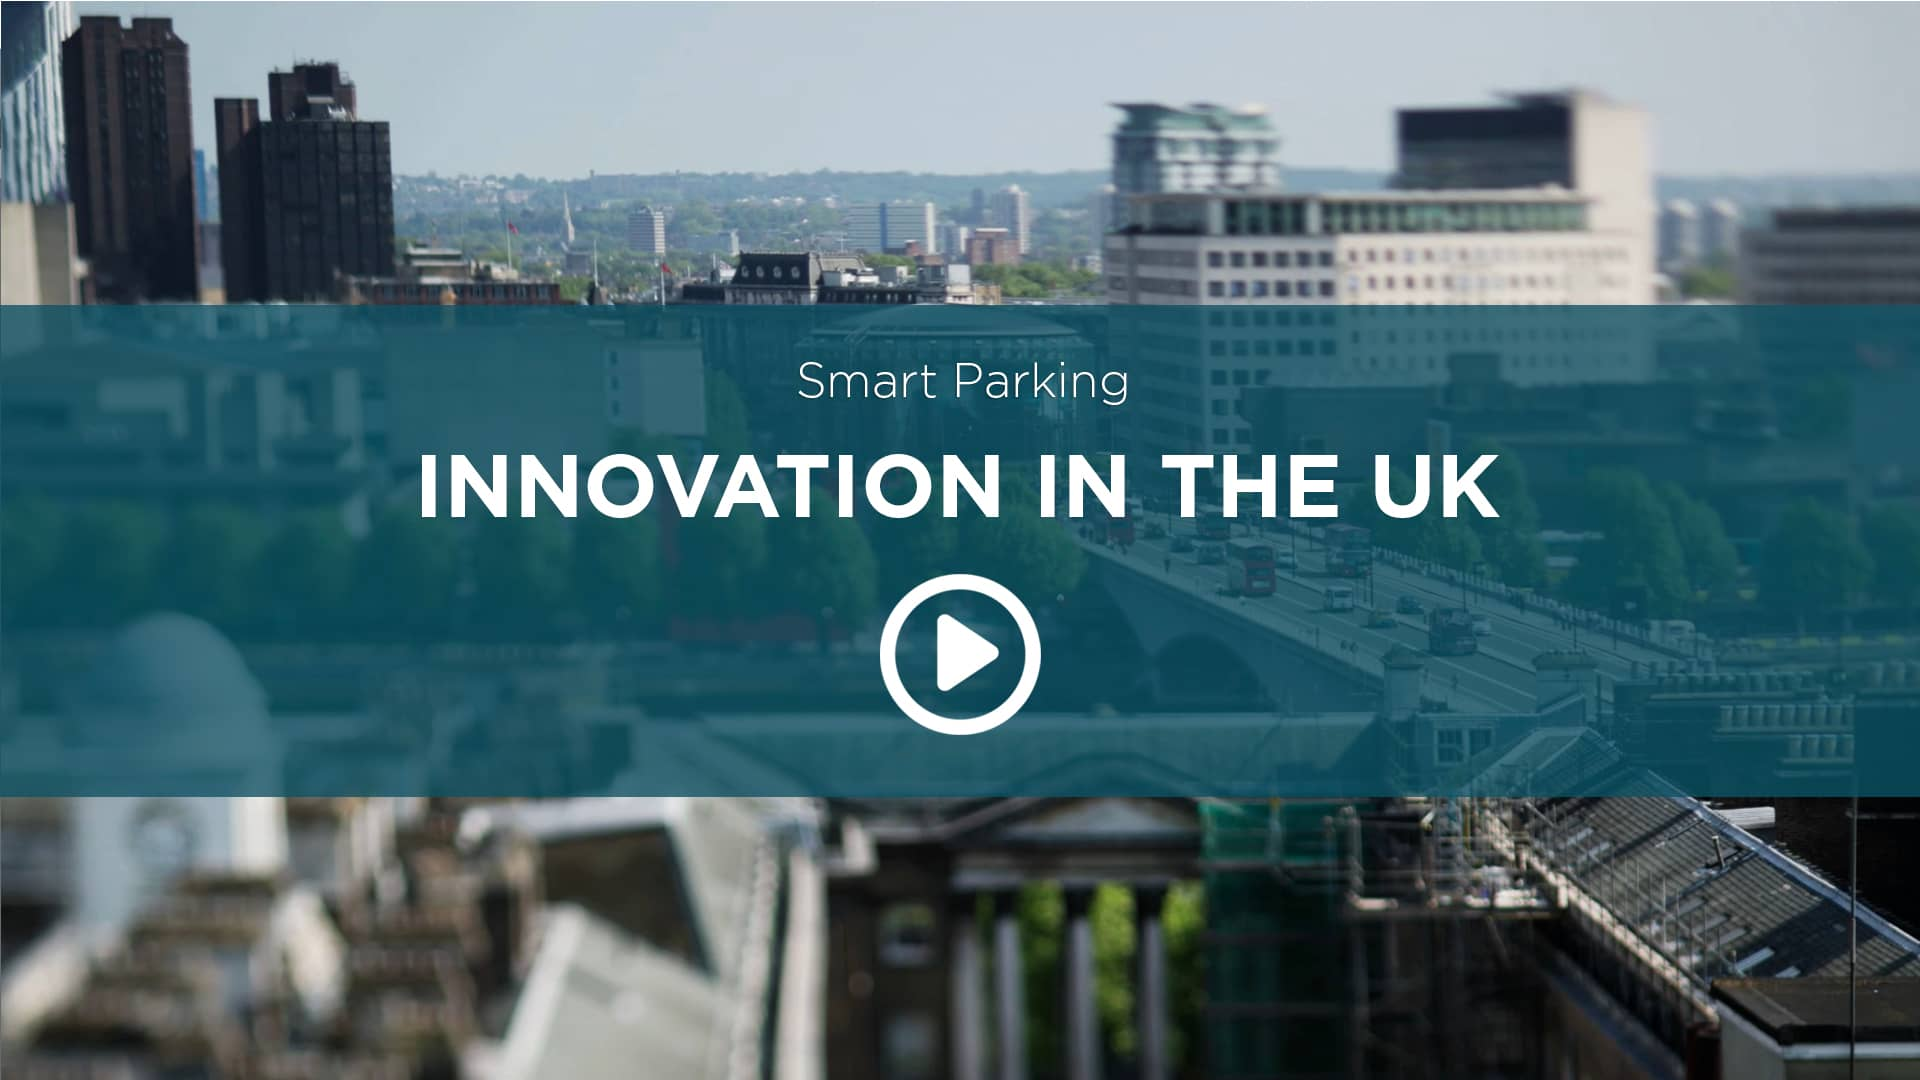 Smart Parking Innovation in the UK